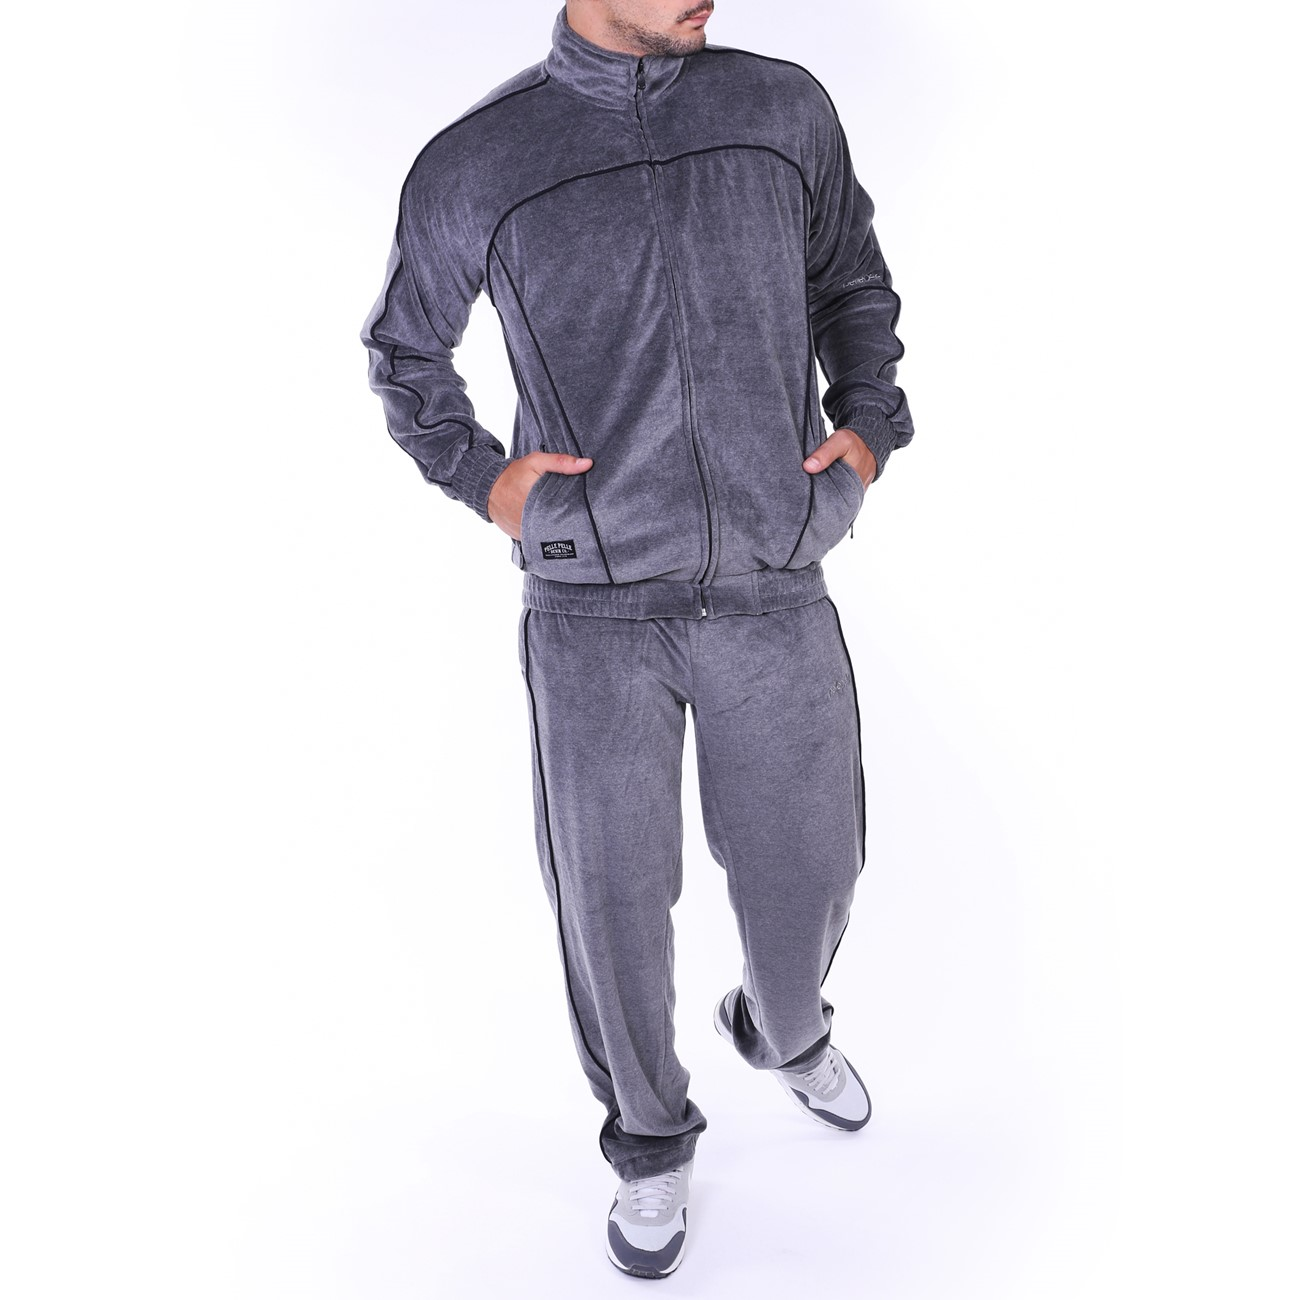 Pop & lock warm up suit